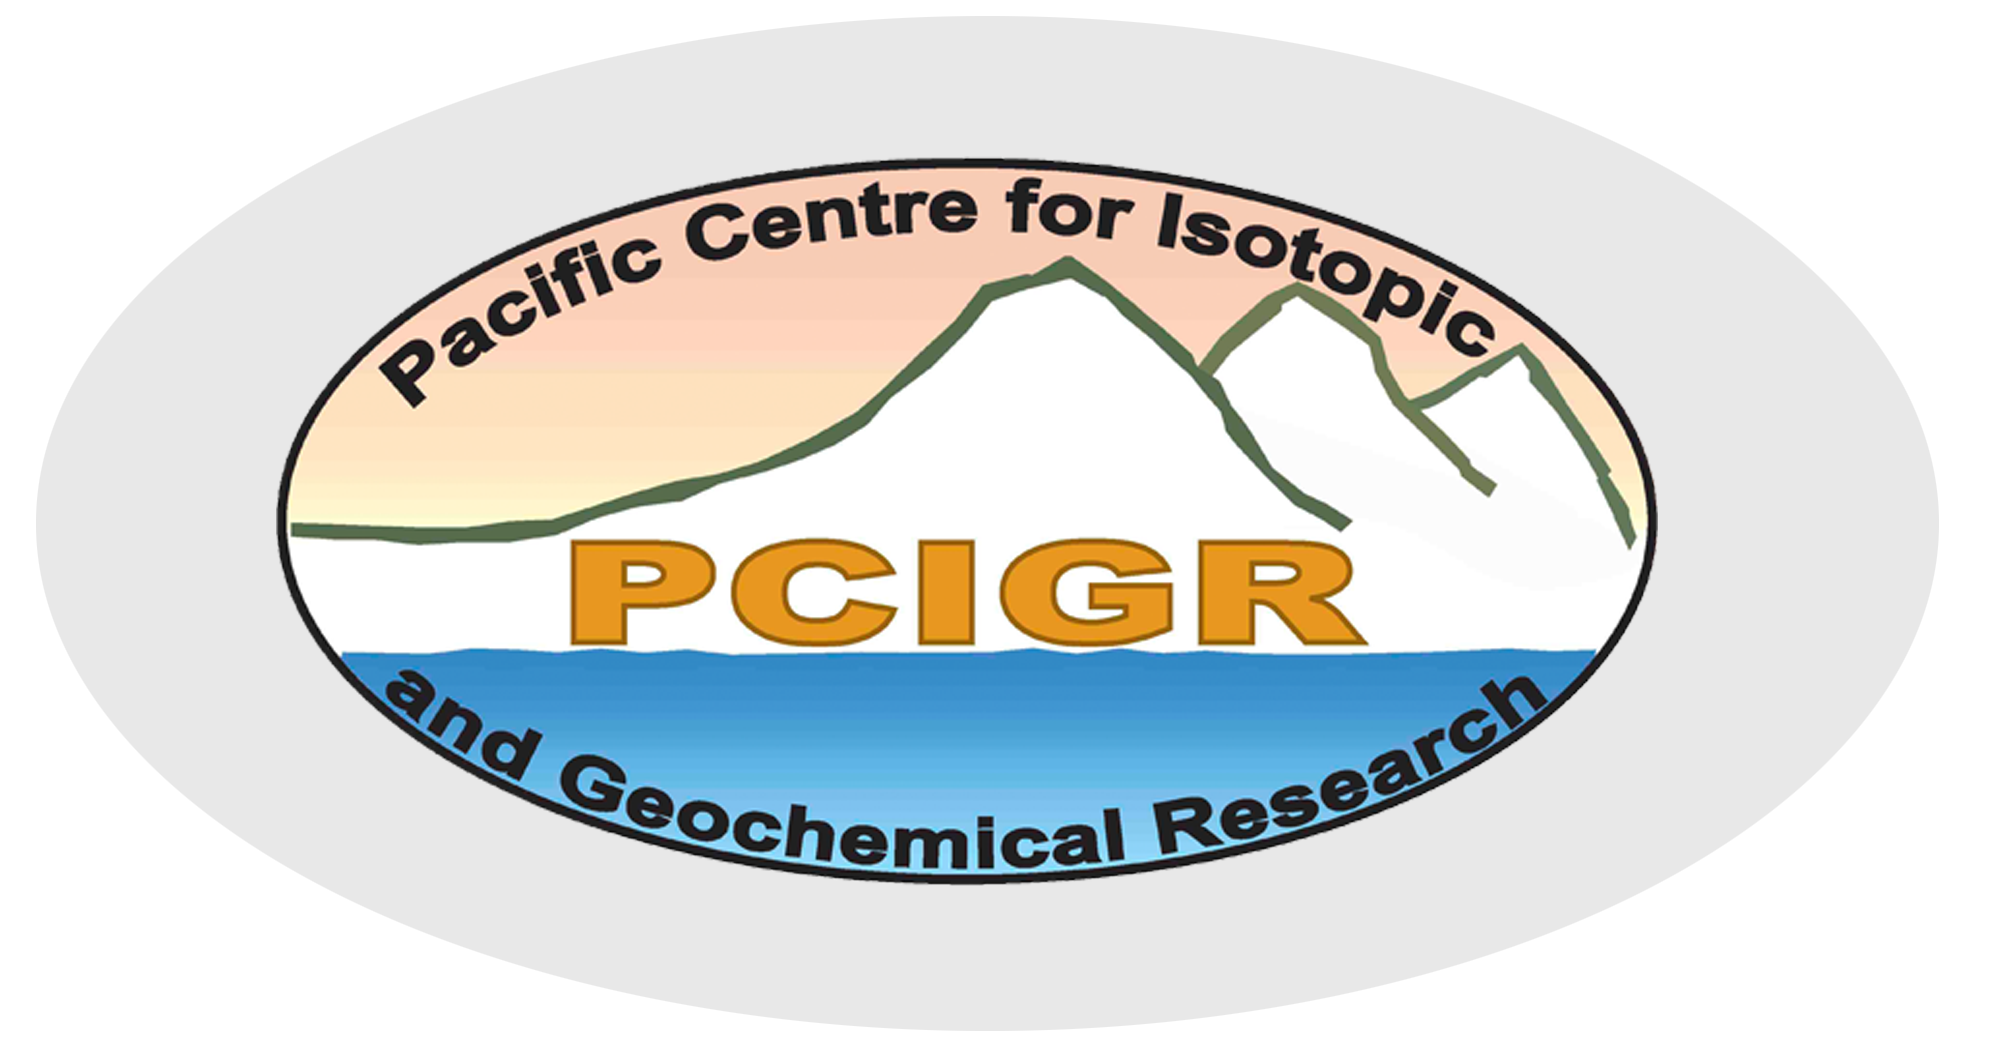 Pacific Centre for Isotopic and Geochemical Research